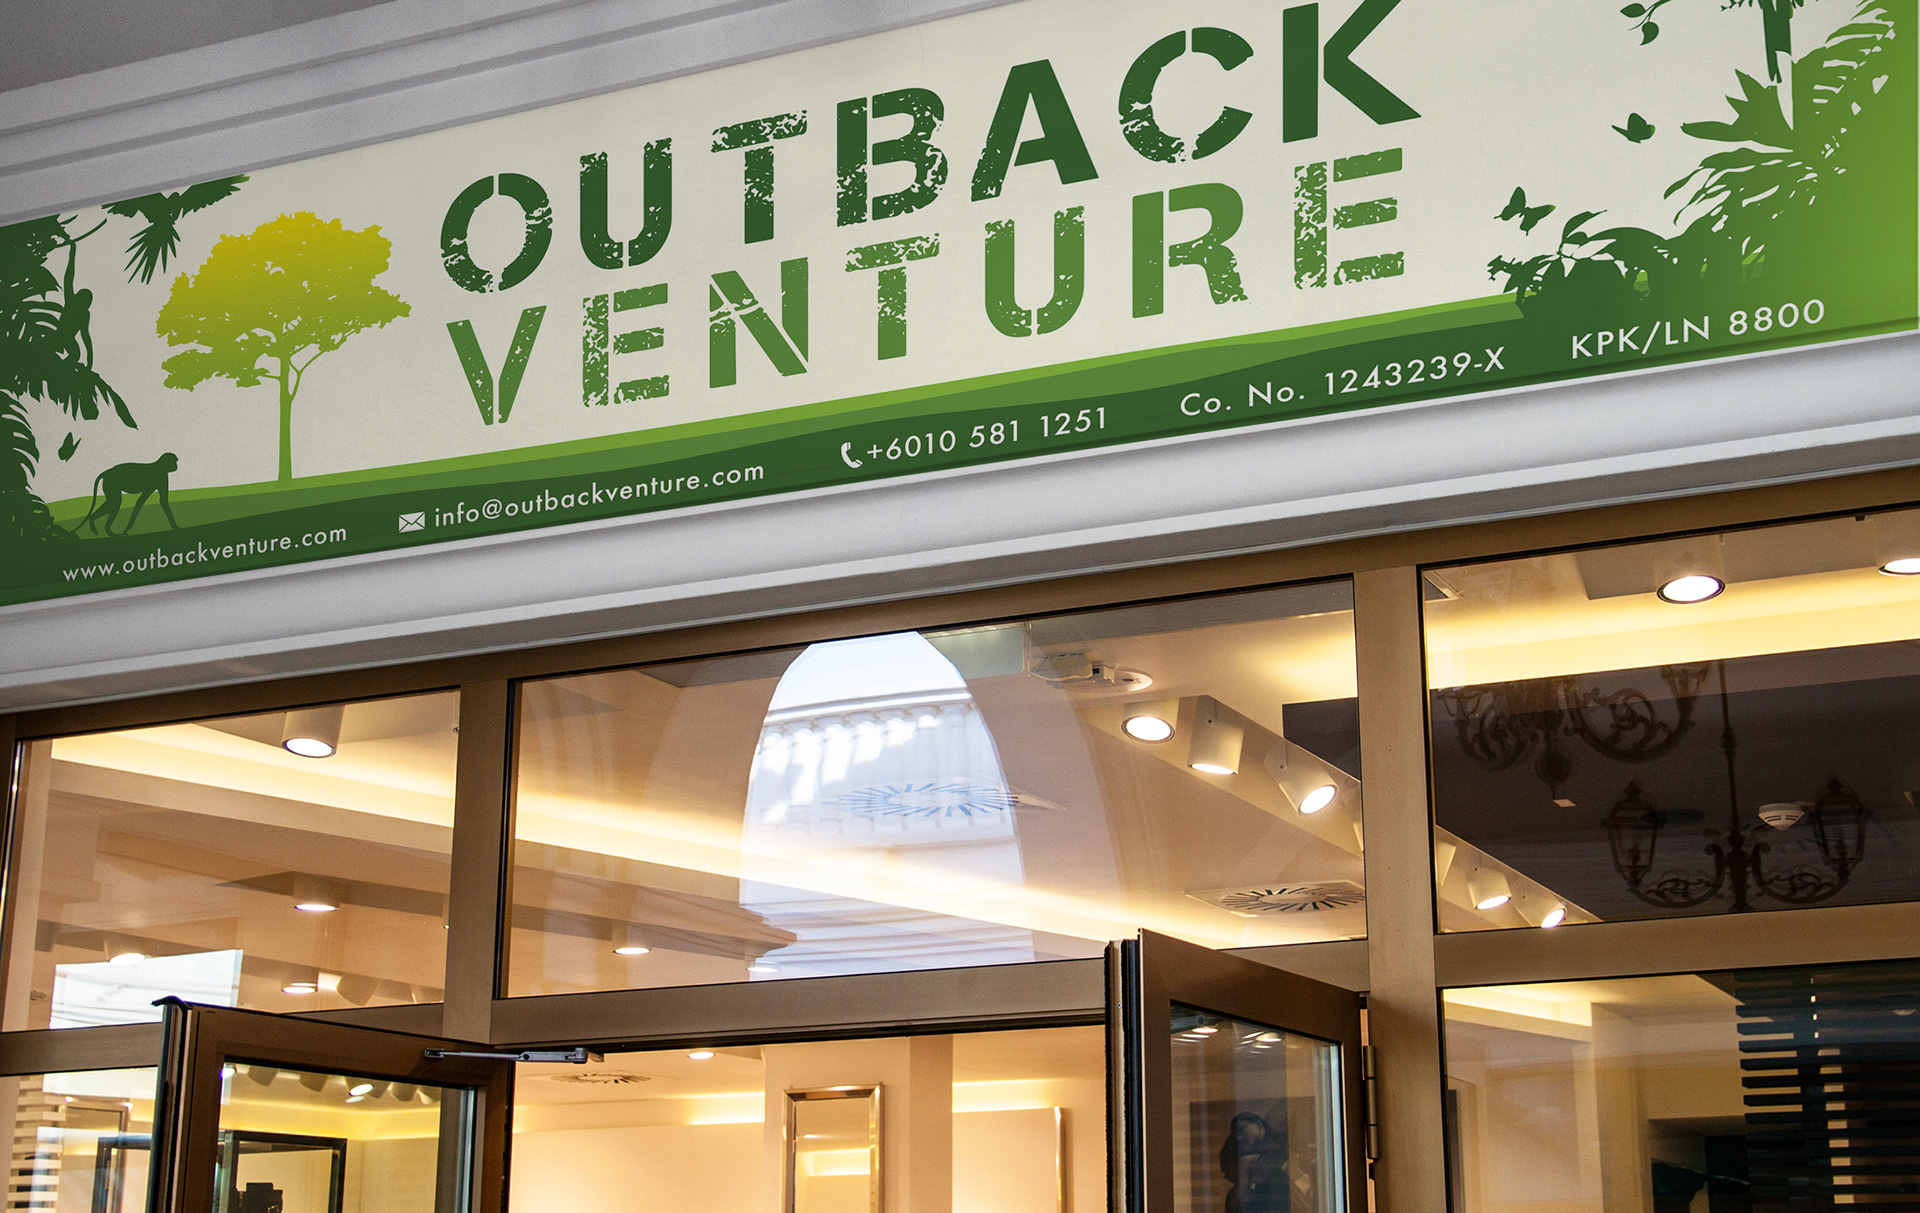 Outback Venture Project